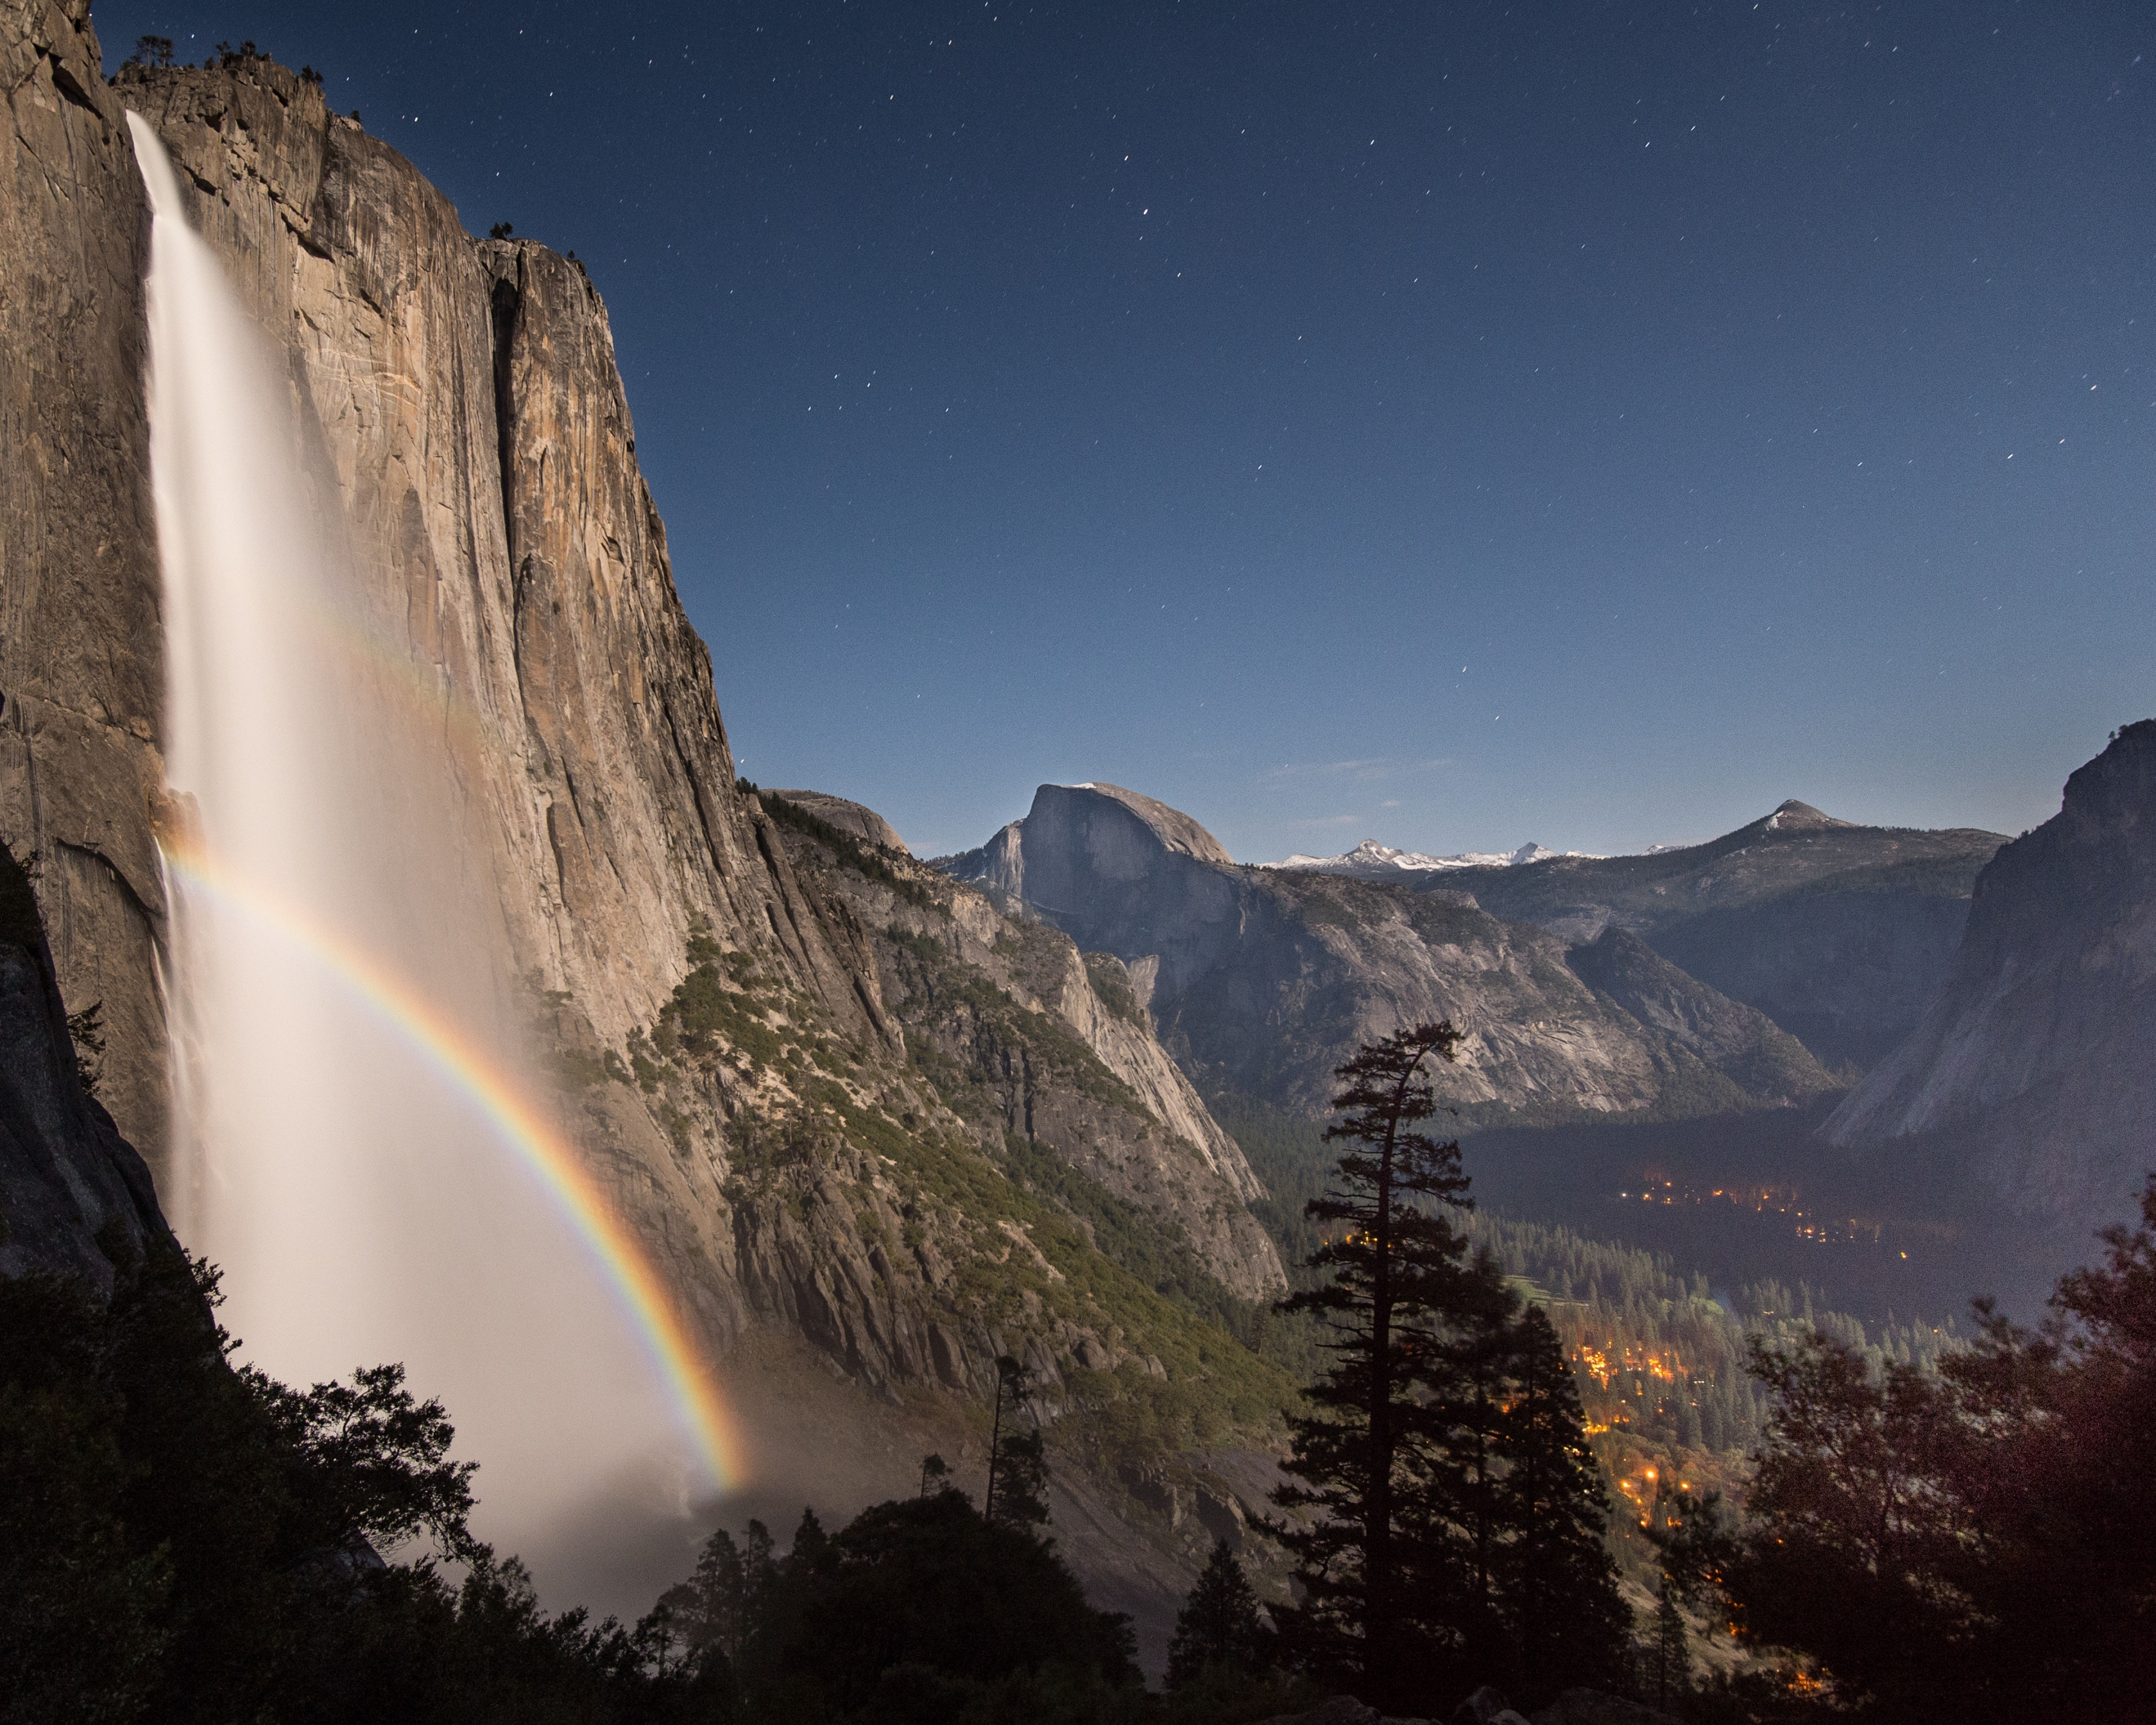 A moonbow is captured over Bridalveil Falls in Yosemite National Park.